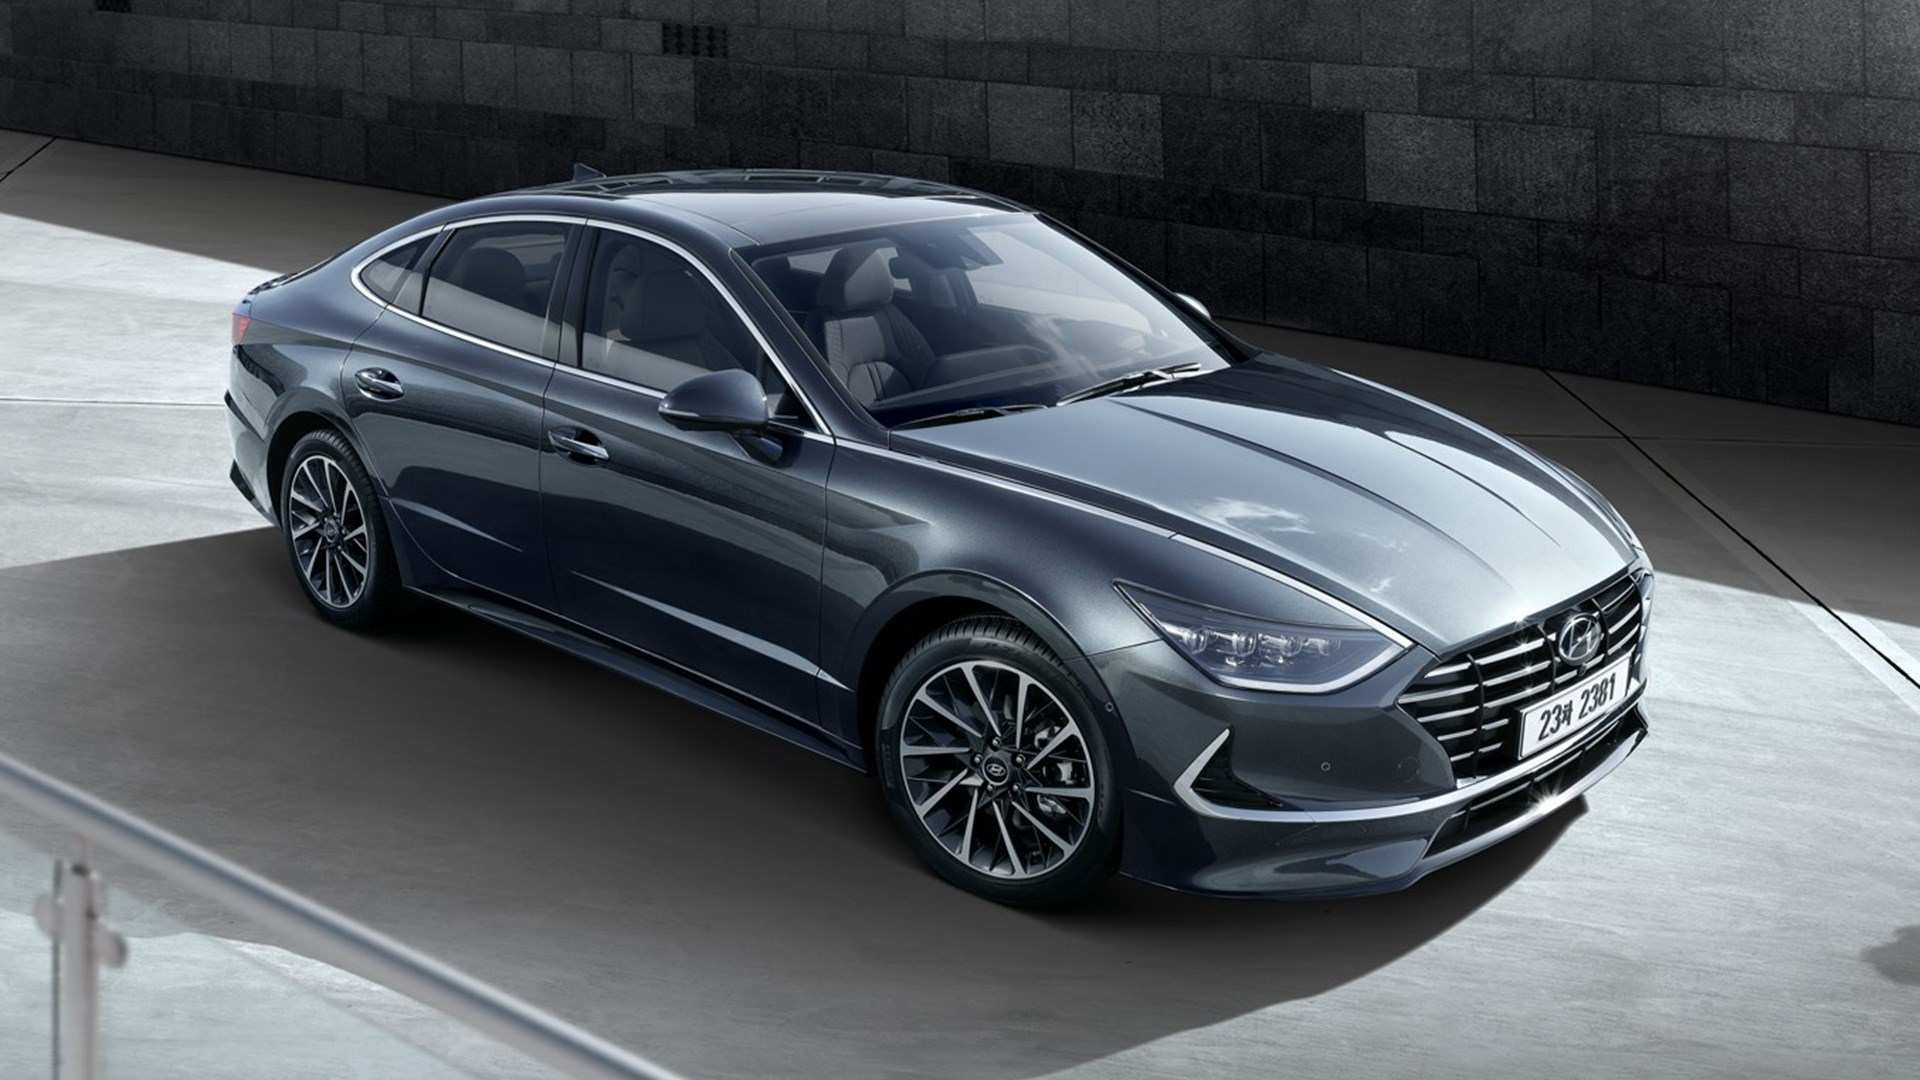 81 The Hyundai Sonata 2020 Release Date Redesign